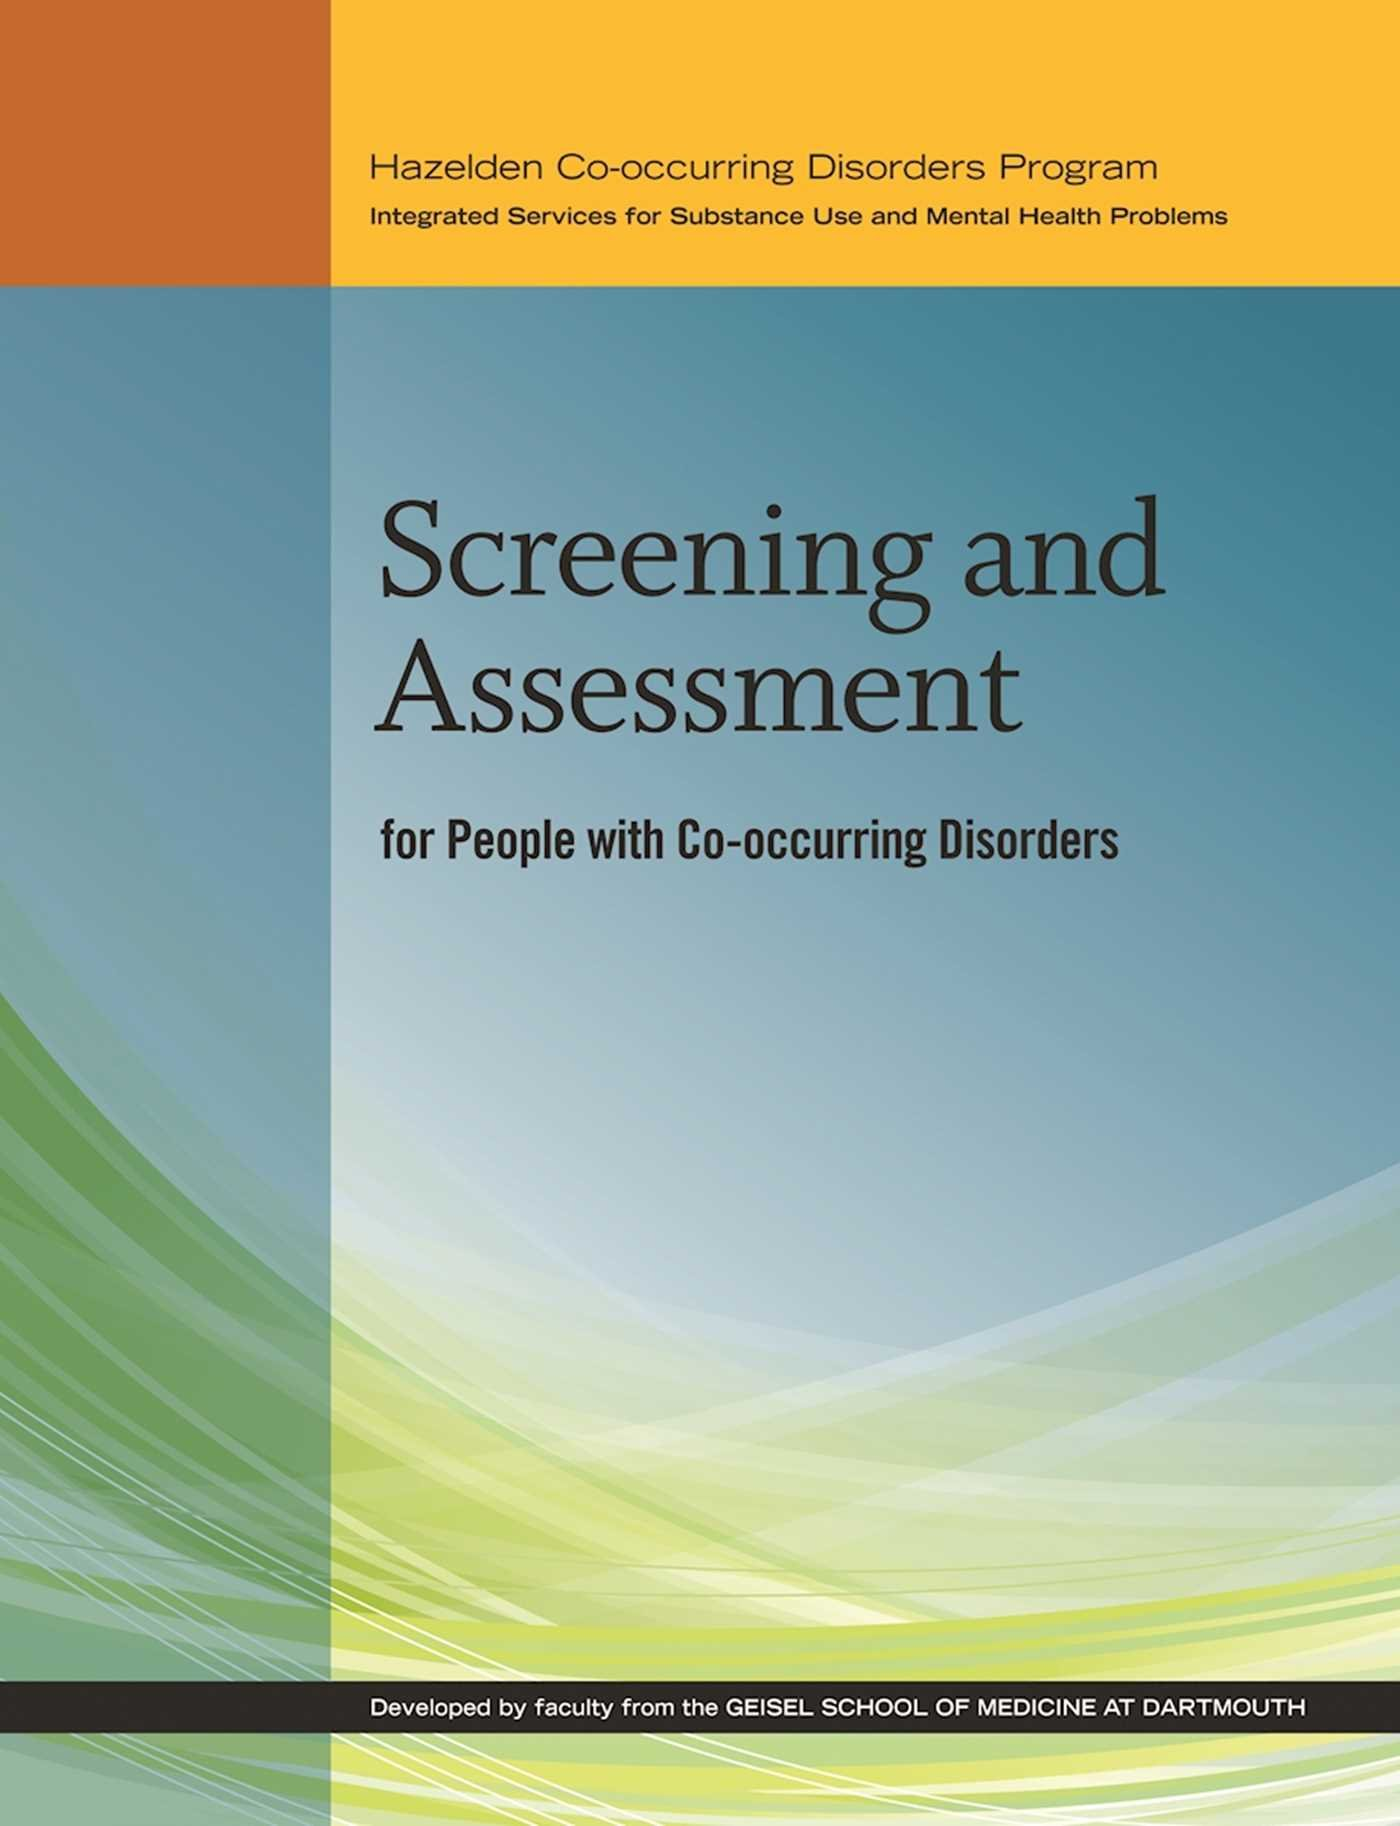 Download Screening and Assessment for People with Co-occurring Disorders (Hazelden Co-occurring Disorders Program) pdf